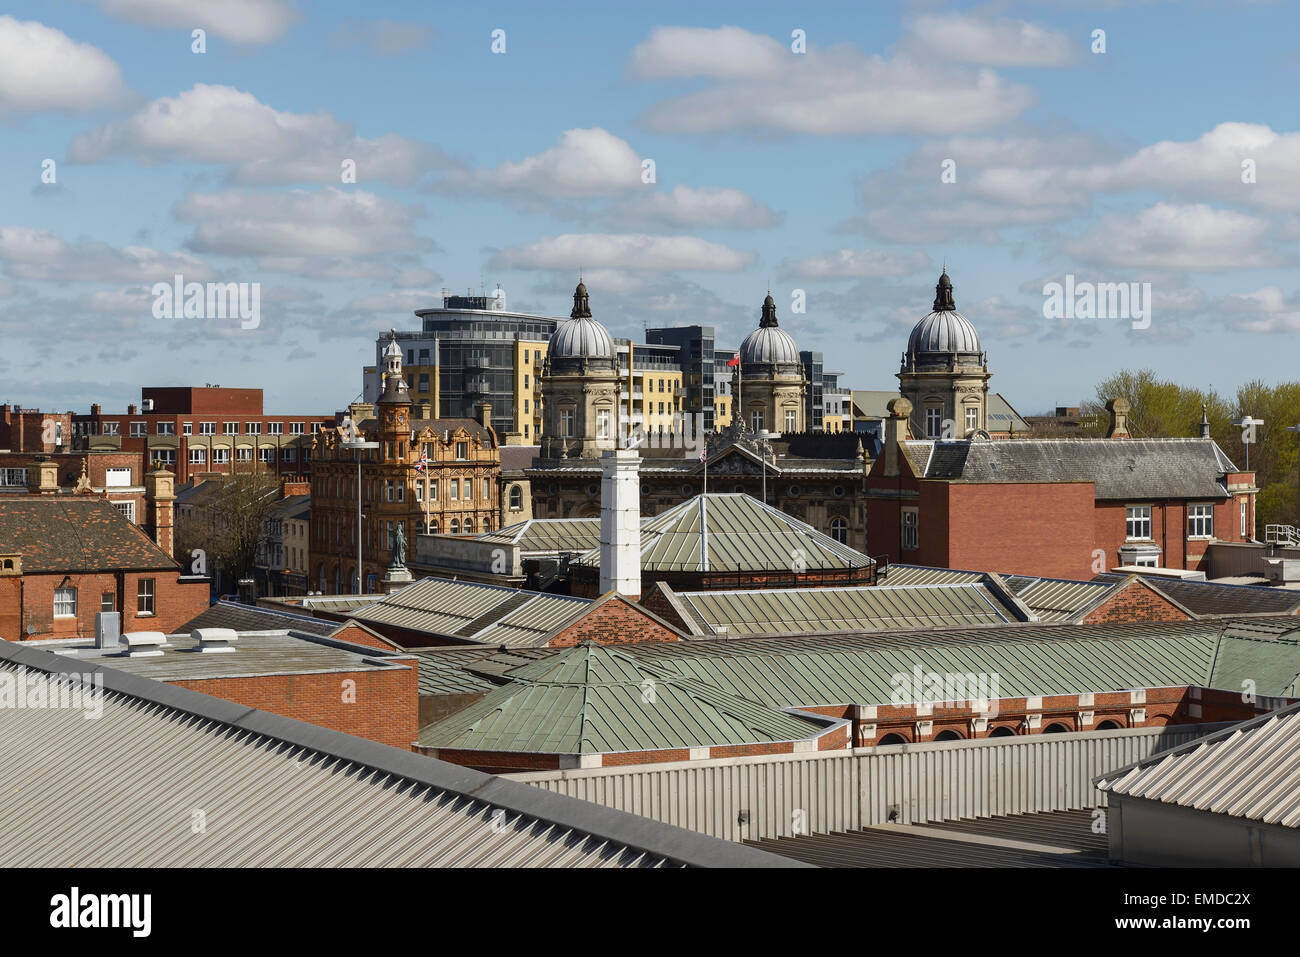 The view across rooftops in Hull city centre including the Ferens art gallery and Maritime Museum - Stock Image